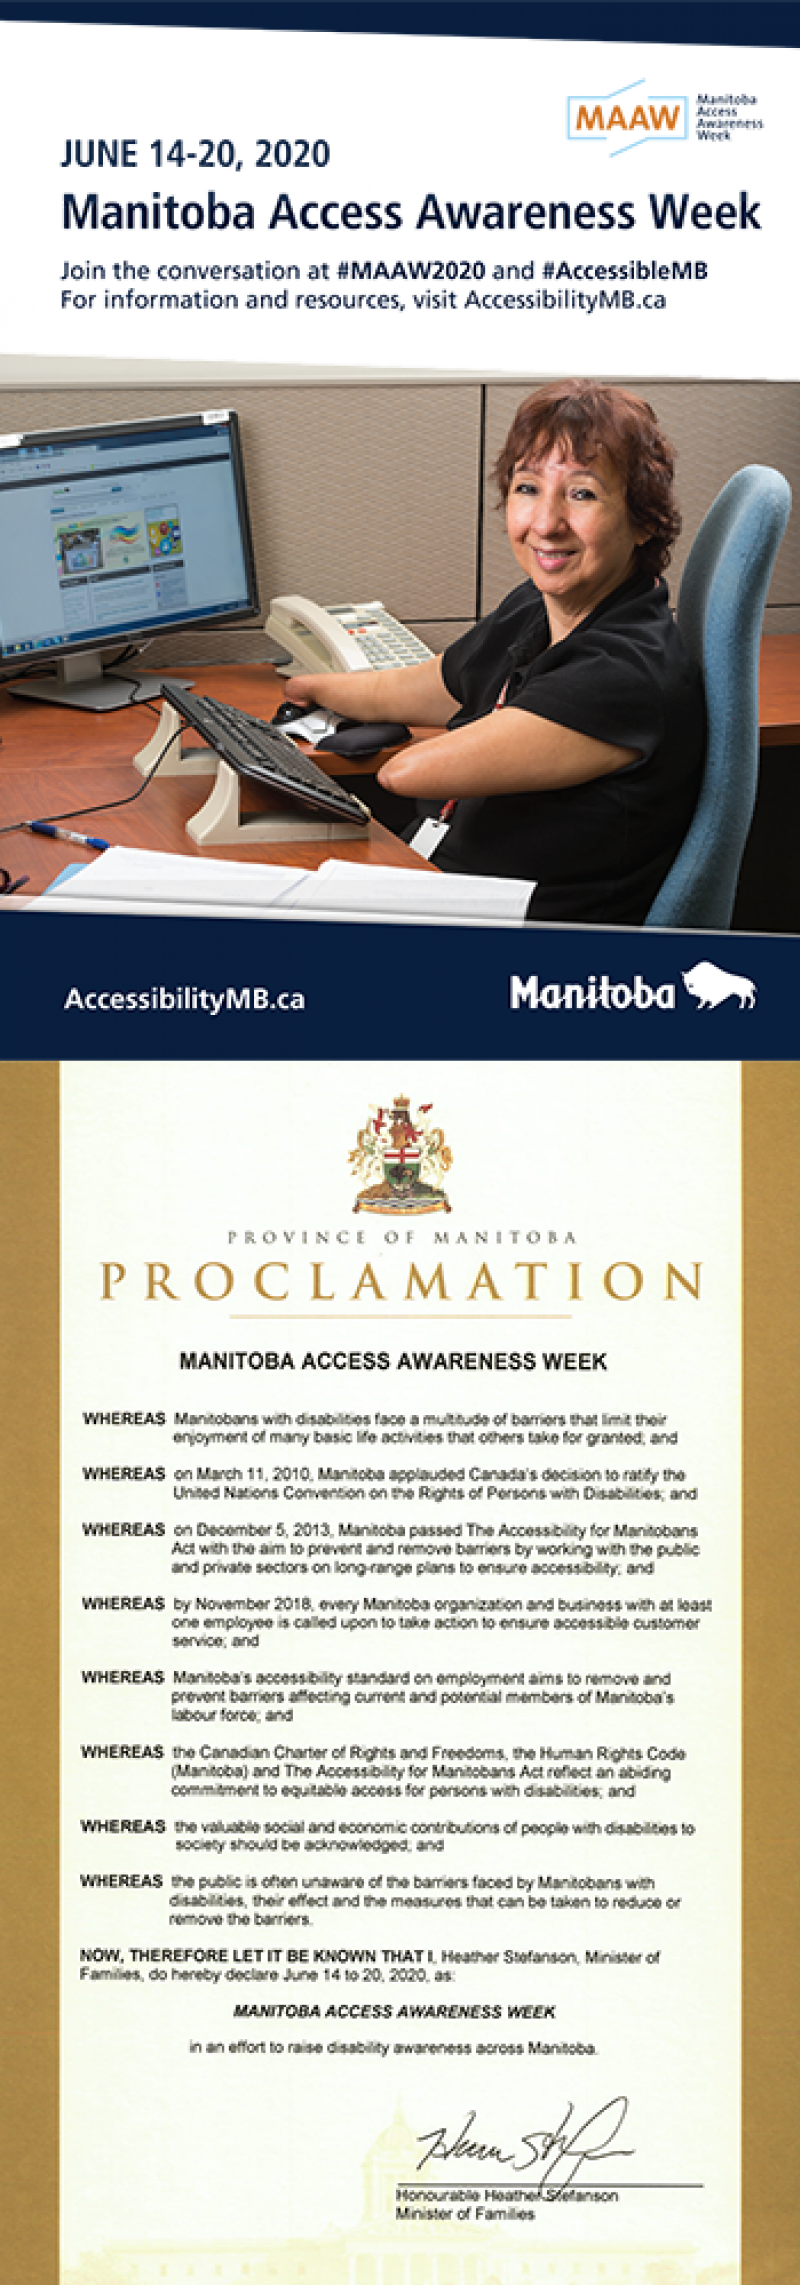 MAAW Poster and Proclamation